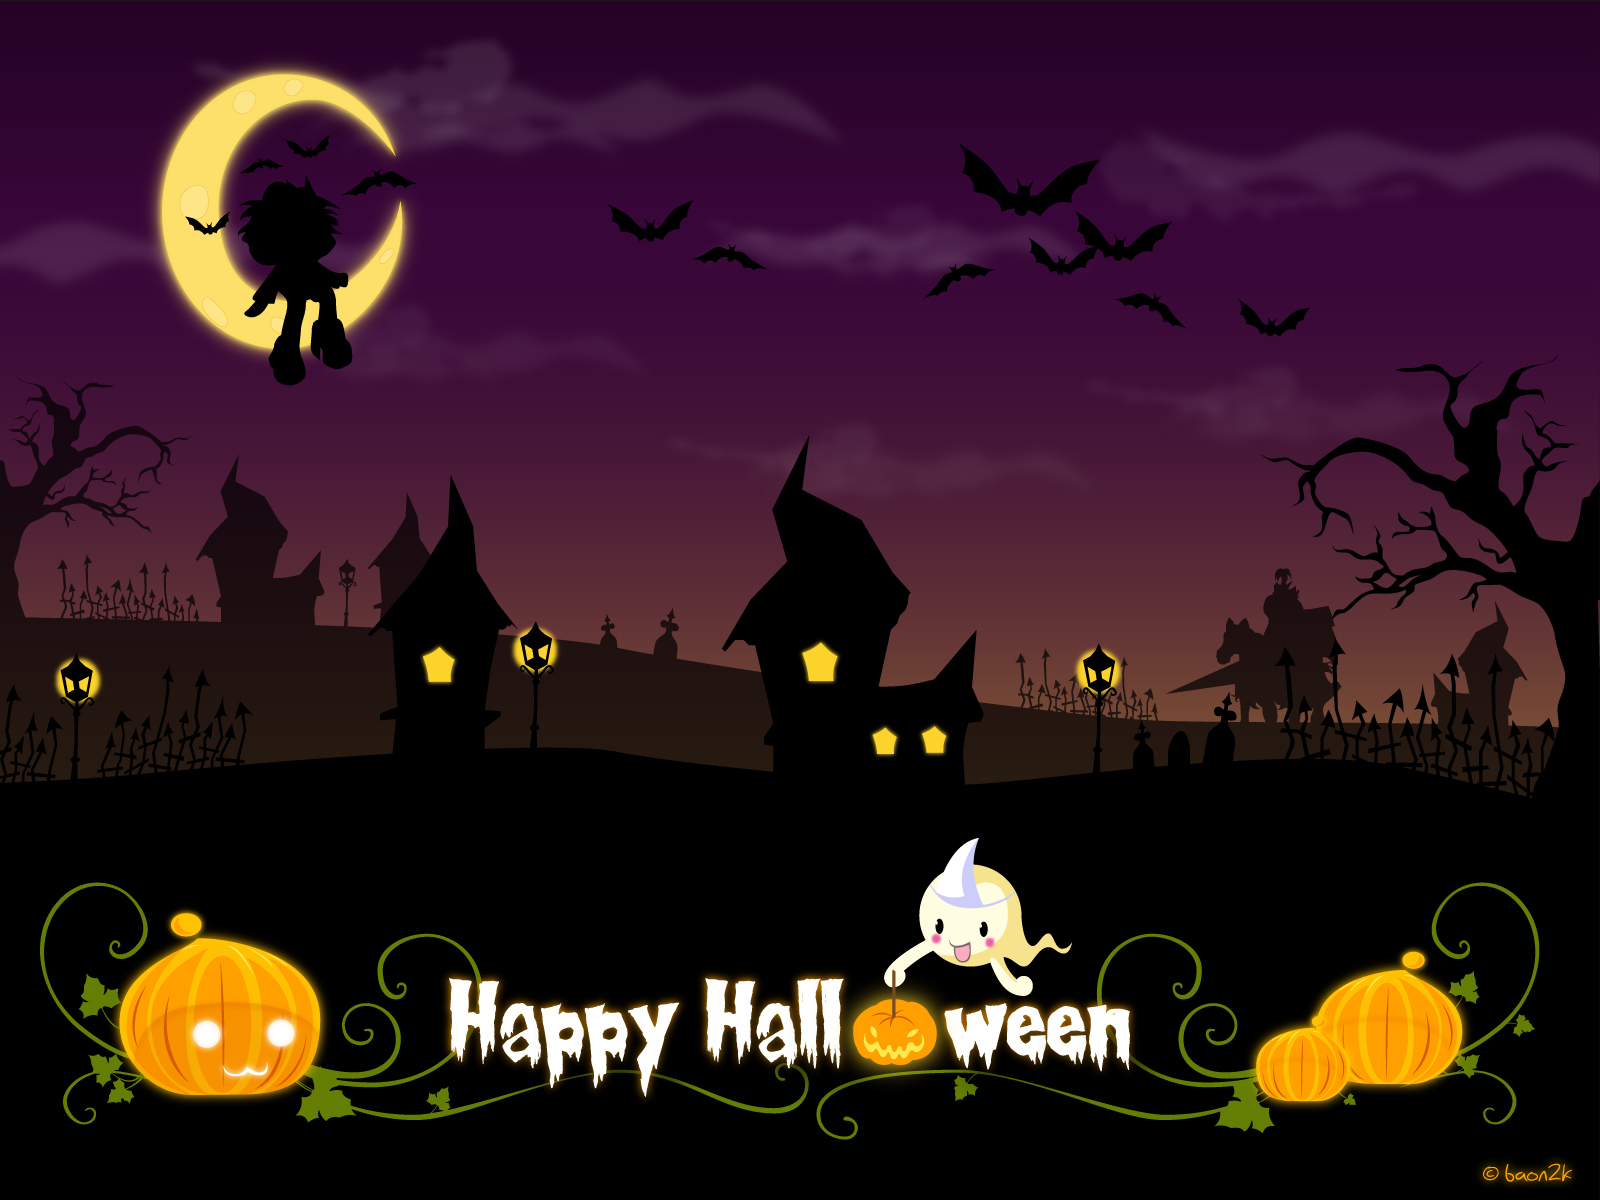 49] Happy Halloween Wallpaper for Desktop on WallpaperSafari 1600x1200